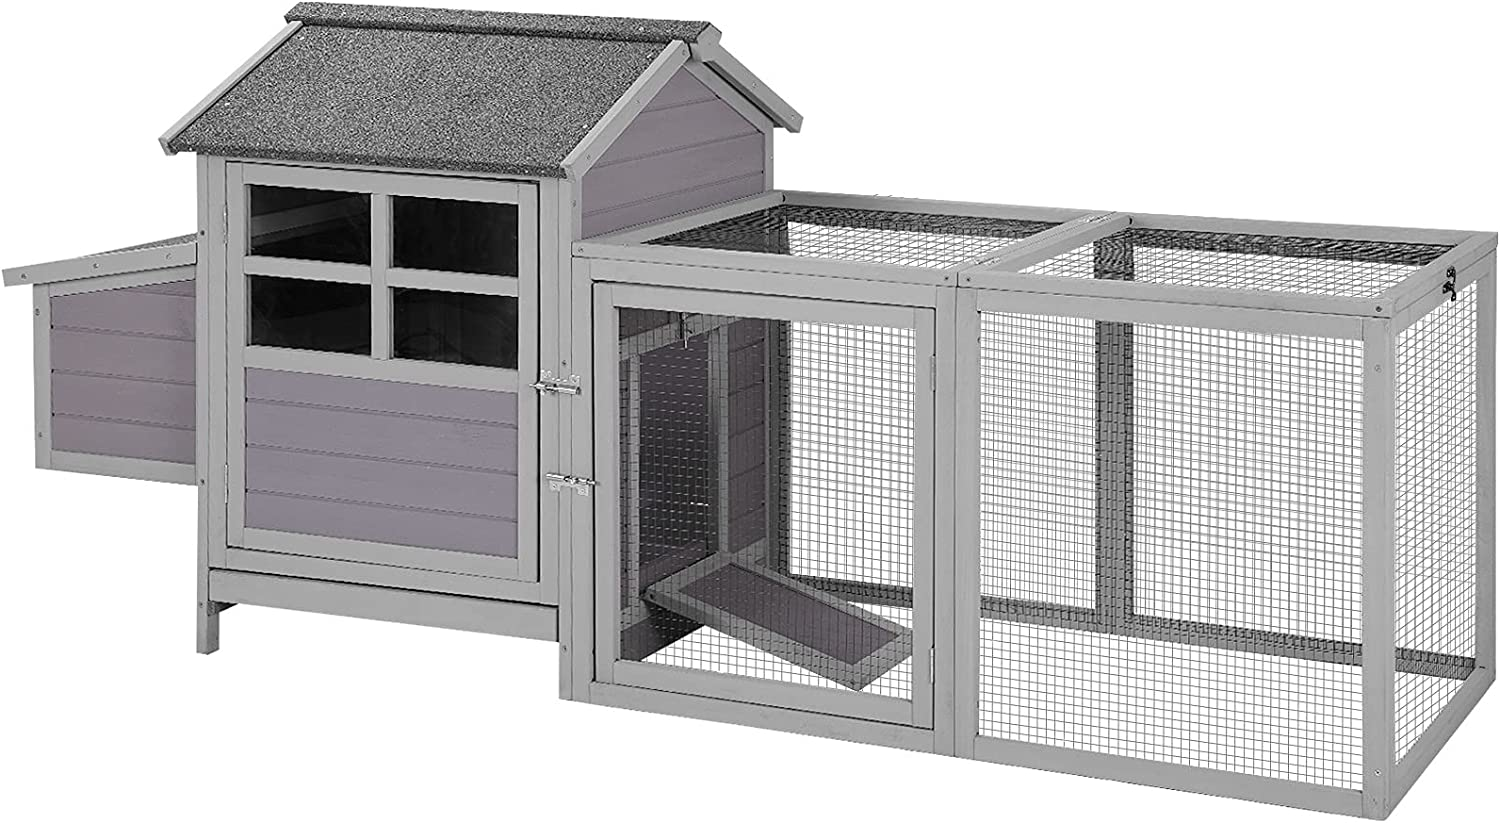 Chicken Product Bombing new work Coop Outdoor Back Yard Hen House Cage Run Poultry with